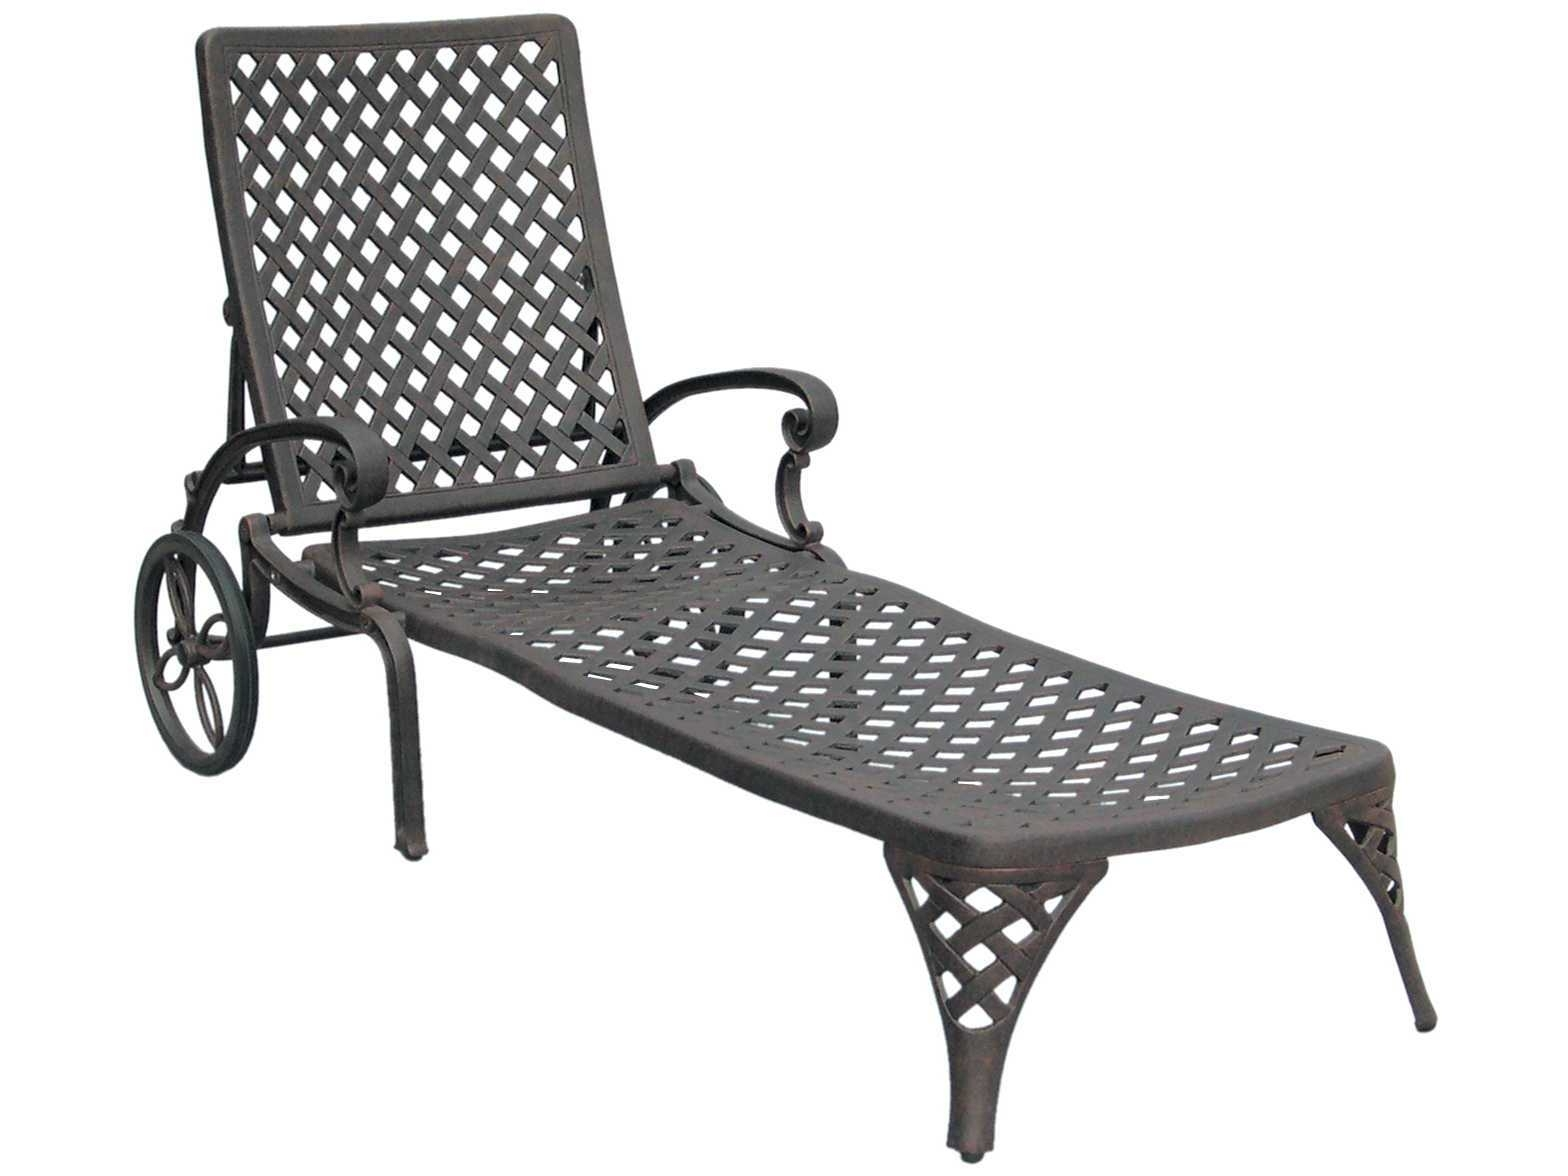 Cast Aluminum Chaise Lounges With Wheels Pertaining To 2017 Darlee Outdoor Living Standard Nassau Cast Aluminum Antique Bronze (View 4 of 15)